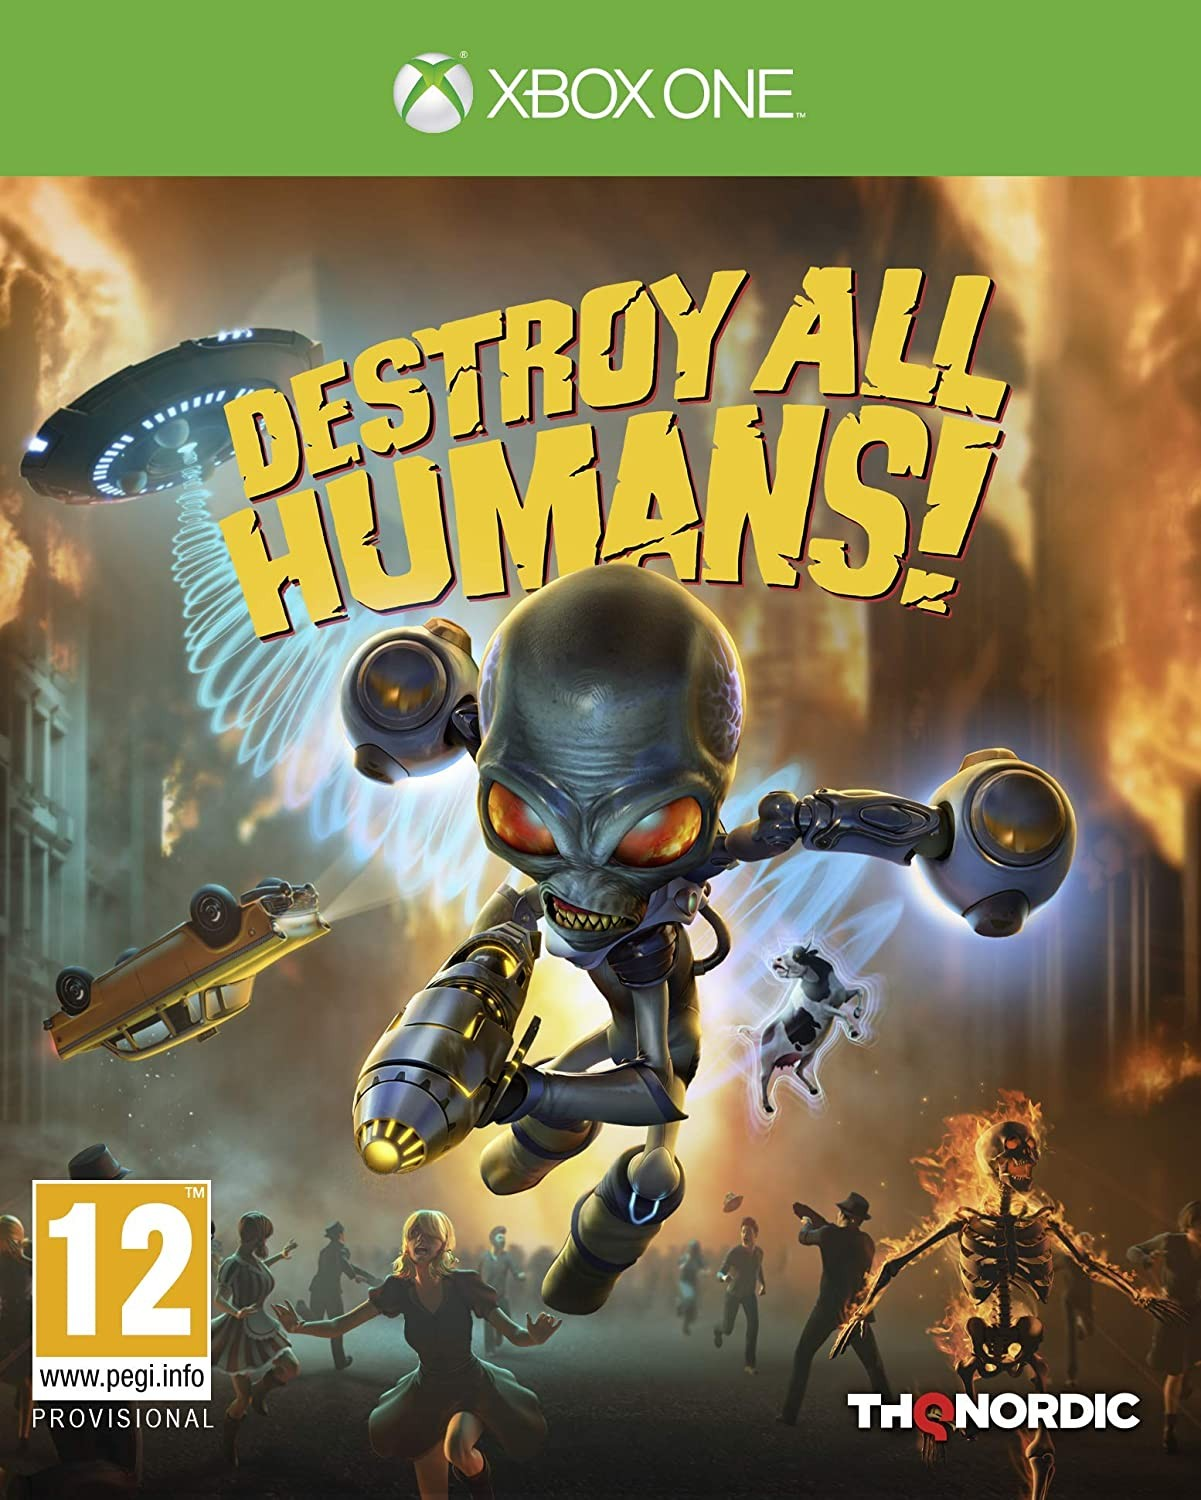 Destroy All Humans! 2020 XONE